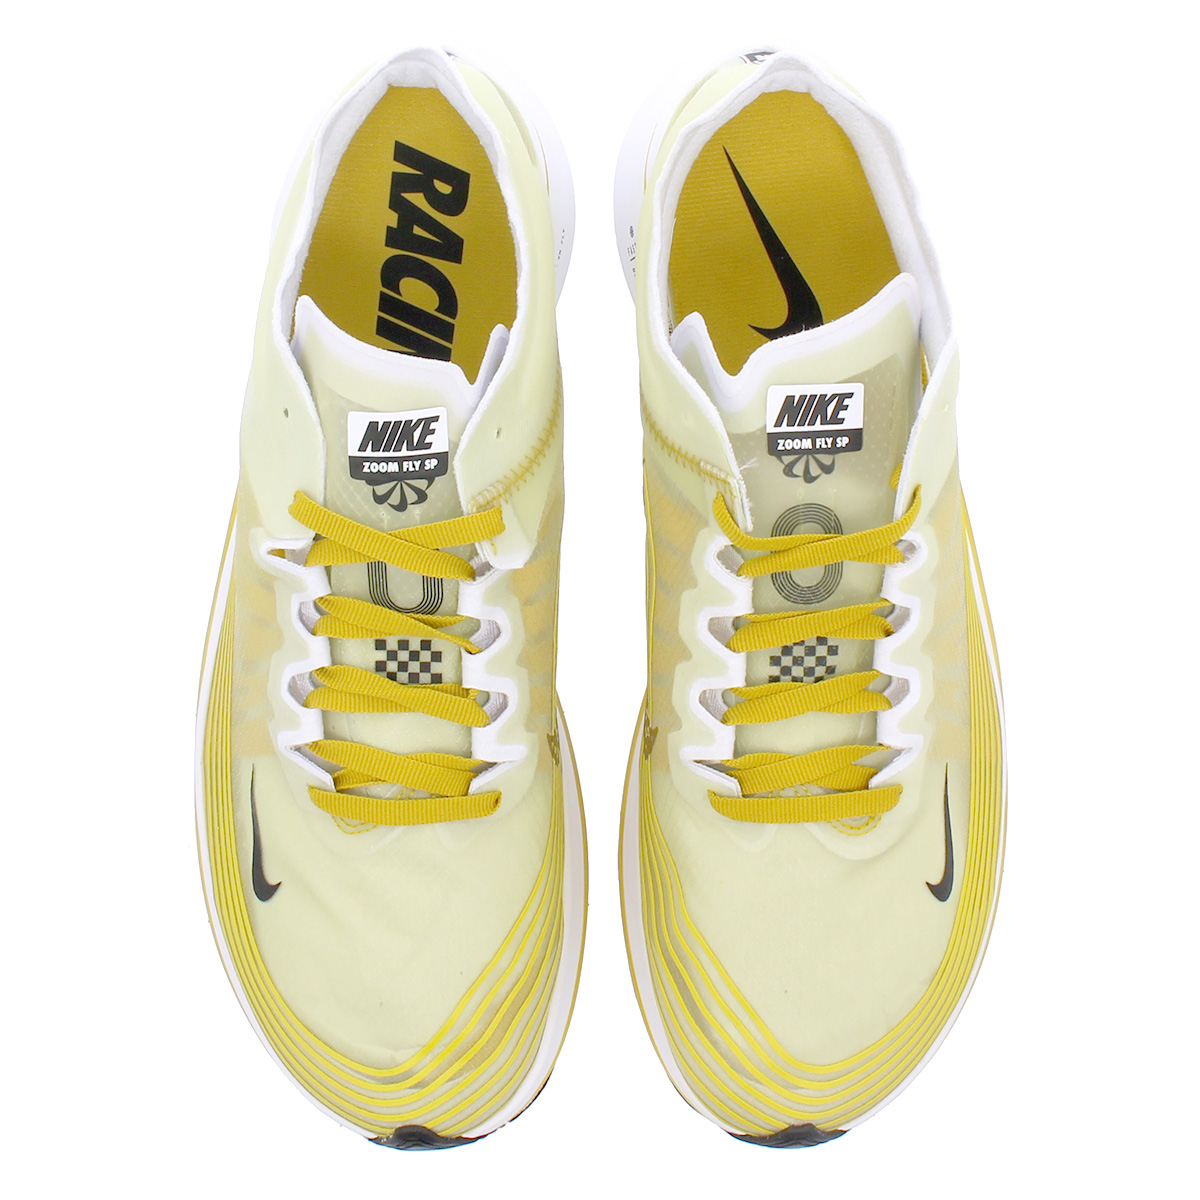 48008ce4644c1 SELECT SHOP LOWTEX  NIKE ZOOM FLY SP Nike zoom fly SP DARK CITRON ...